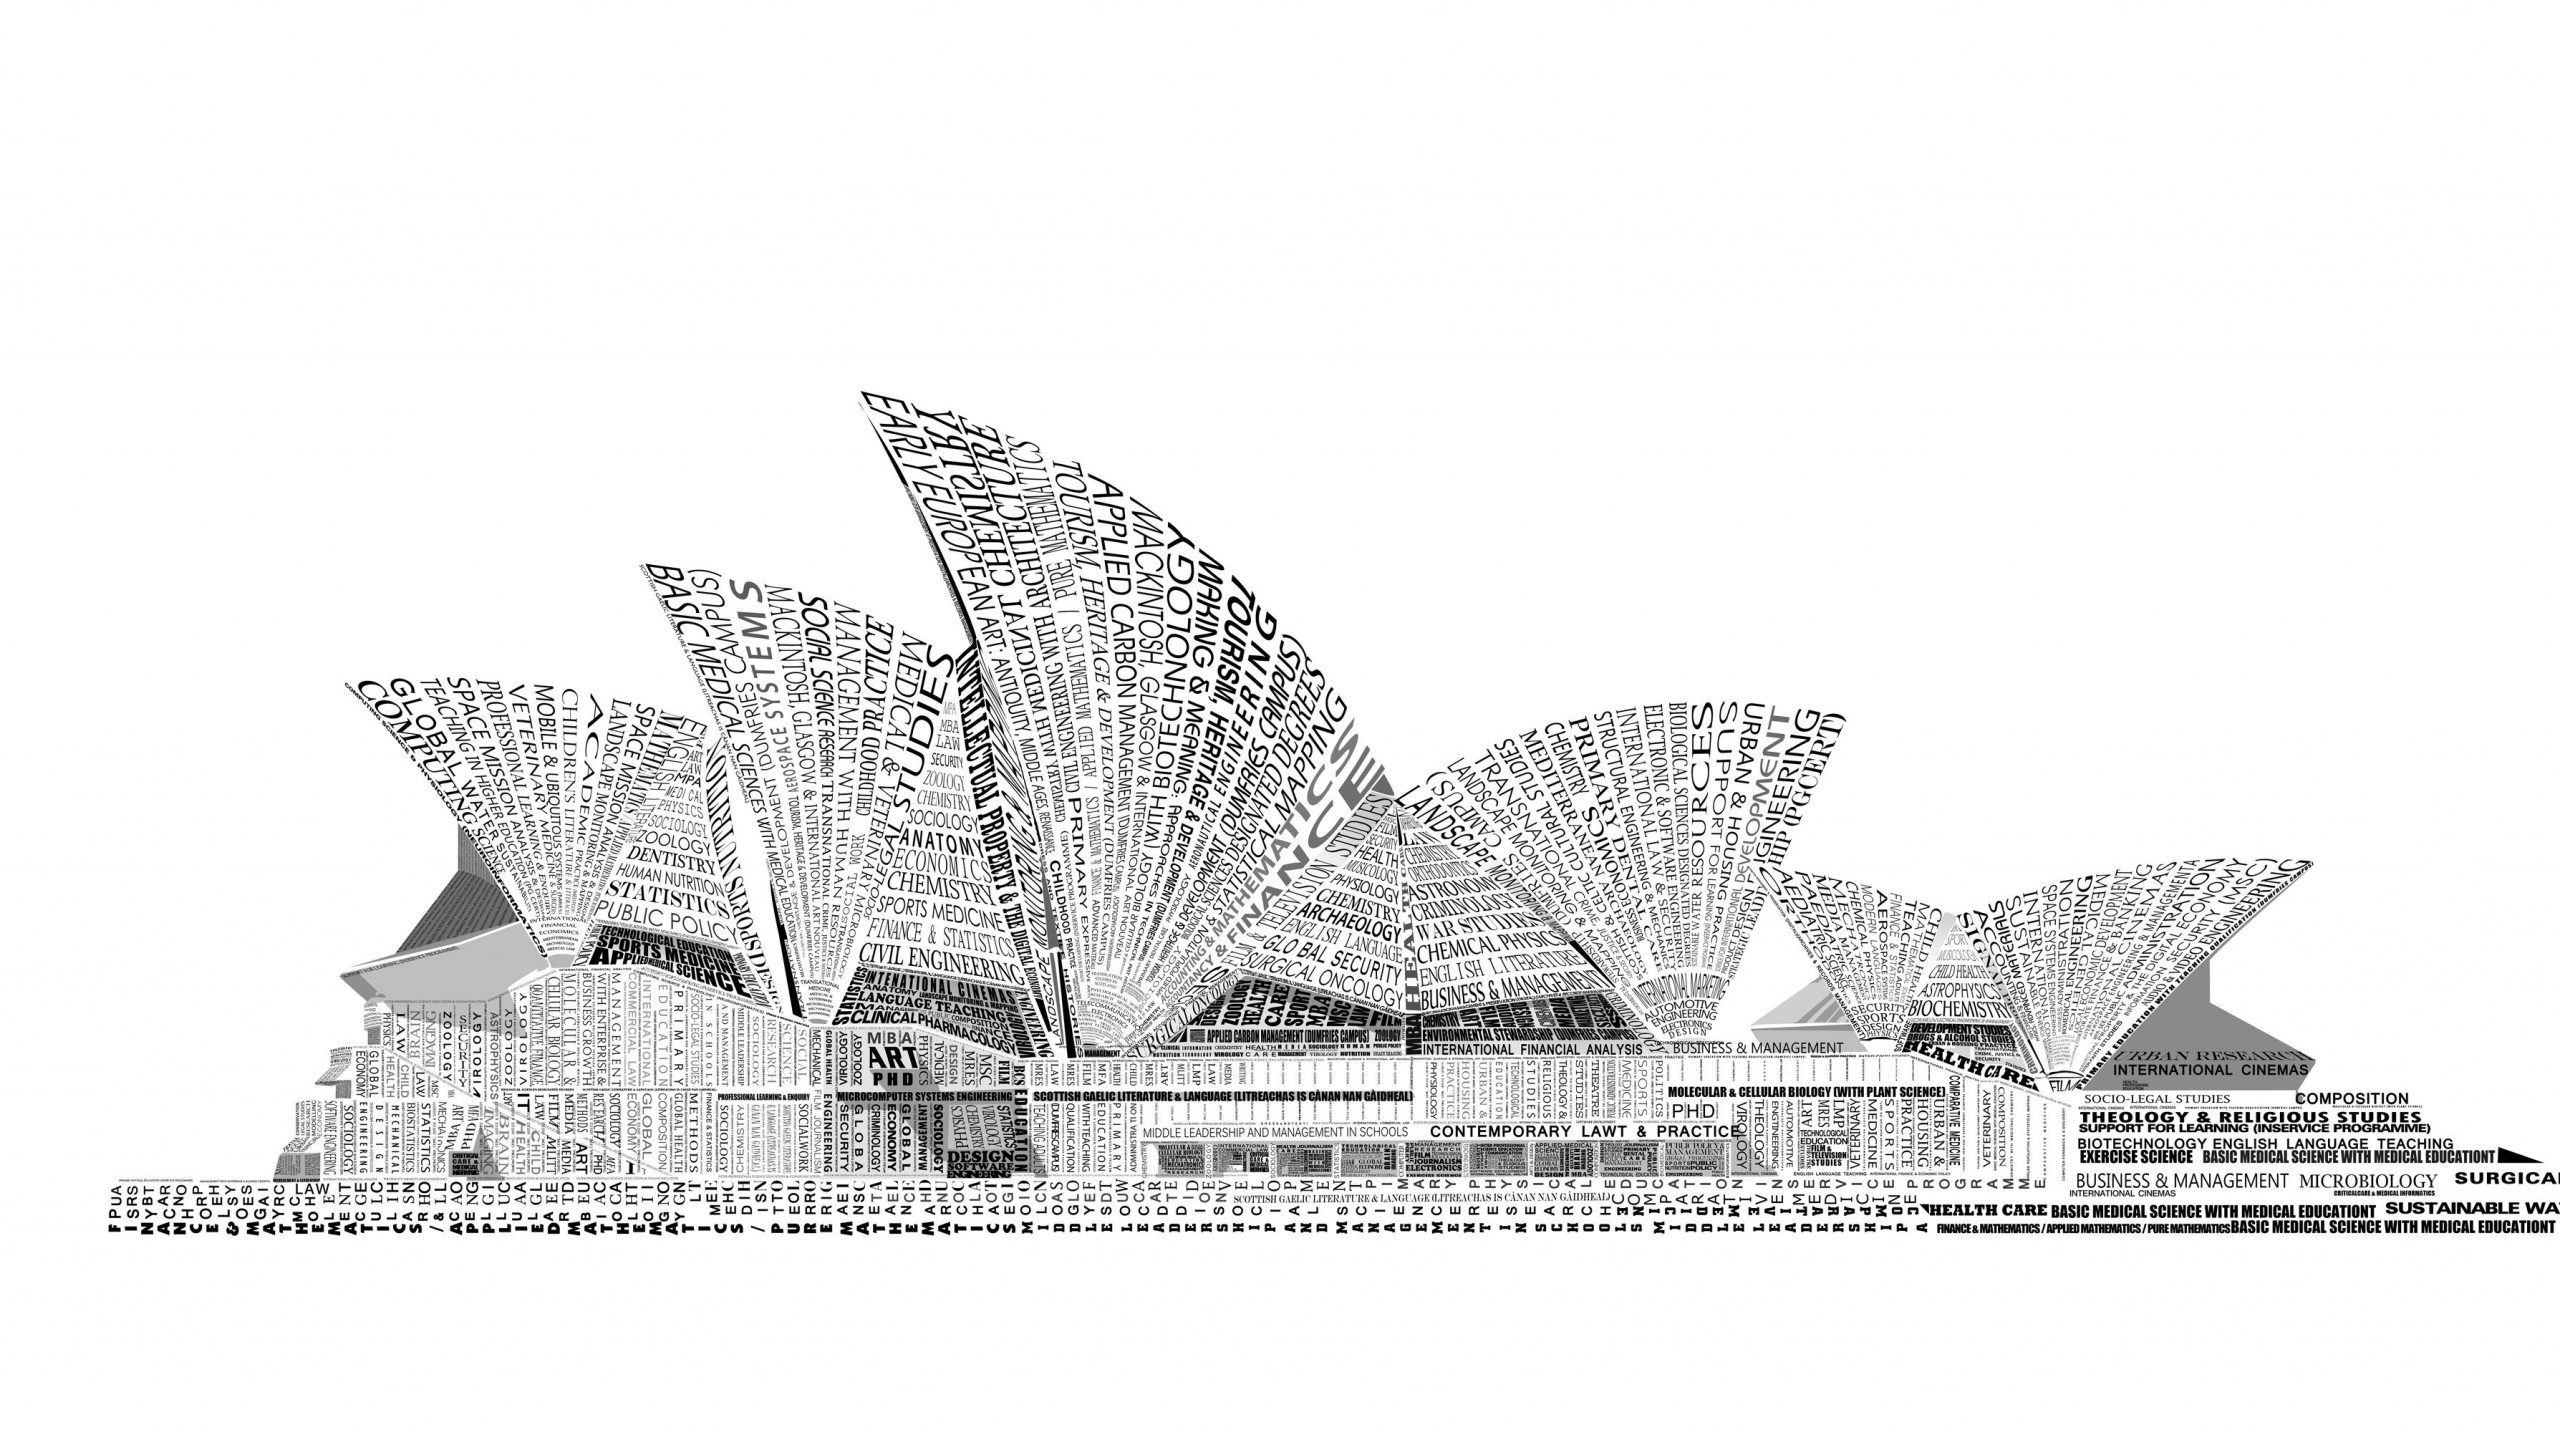 Opera House Sydney Typography Wallpaper for Social Media YouTube Channel Art